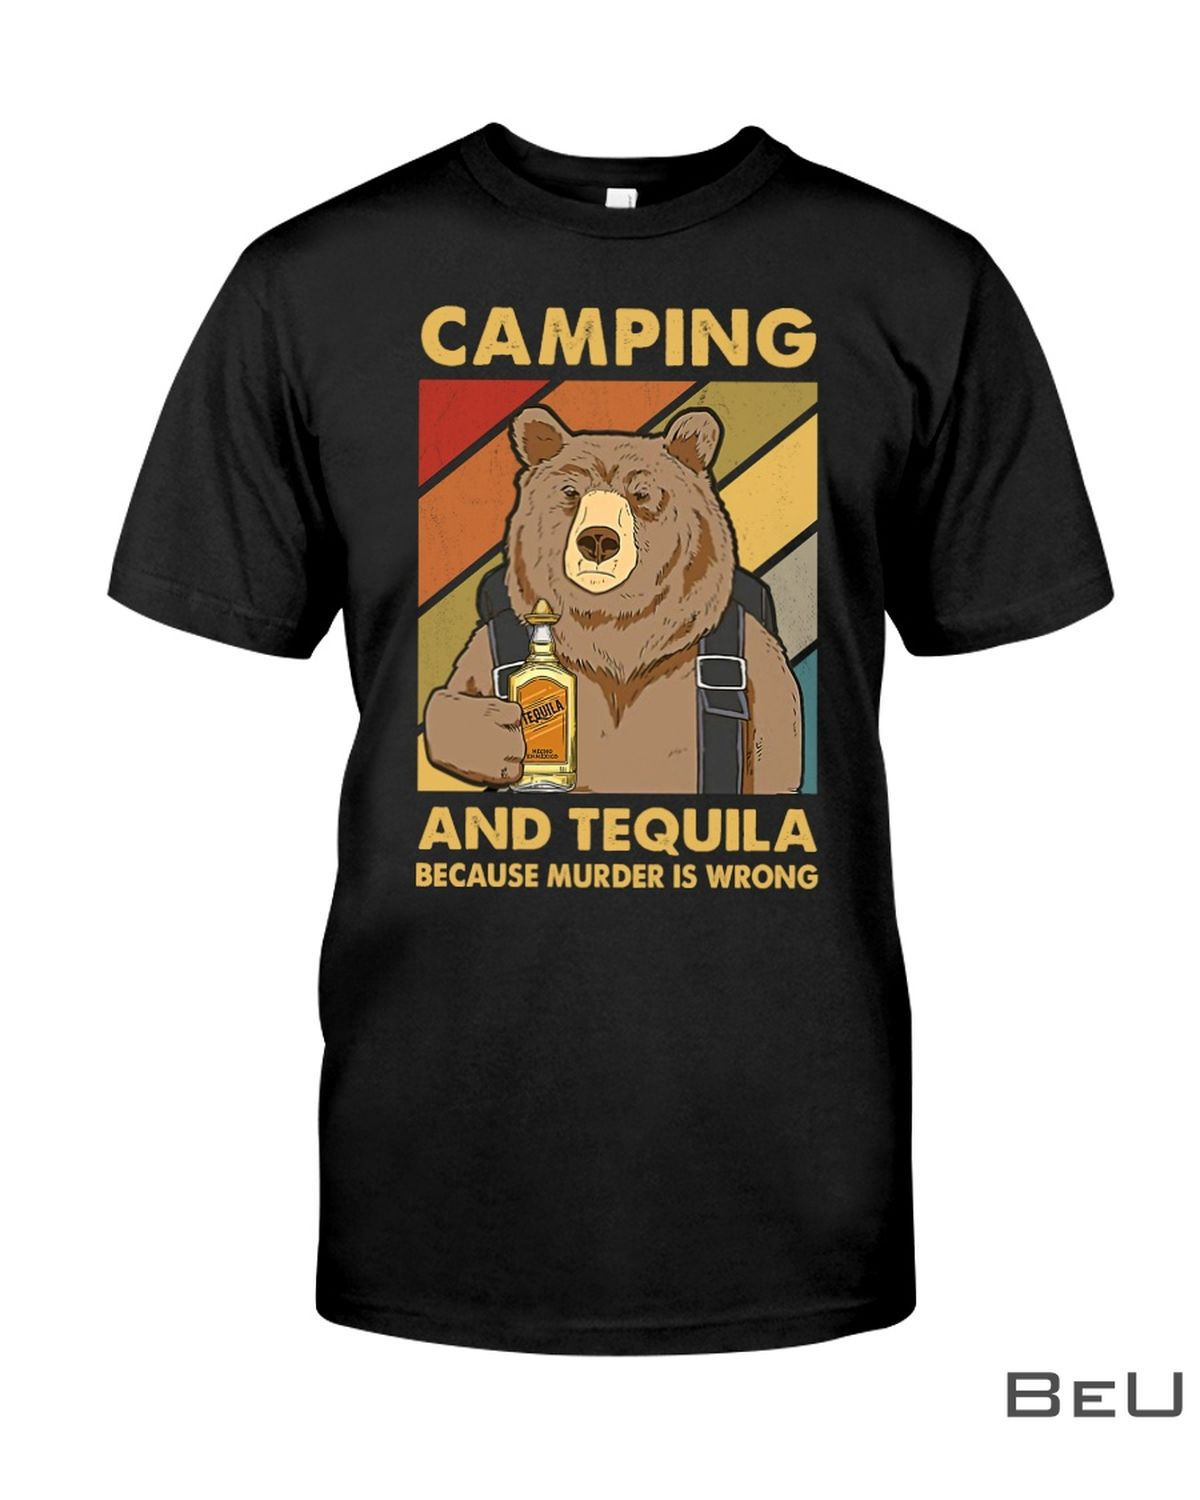 Camping And Tequila Because Murder Is Wrong Shirt, hoodie, tank top